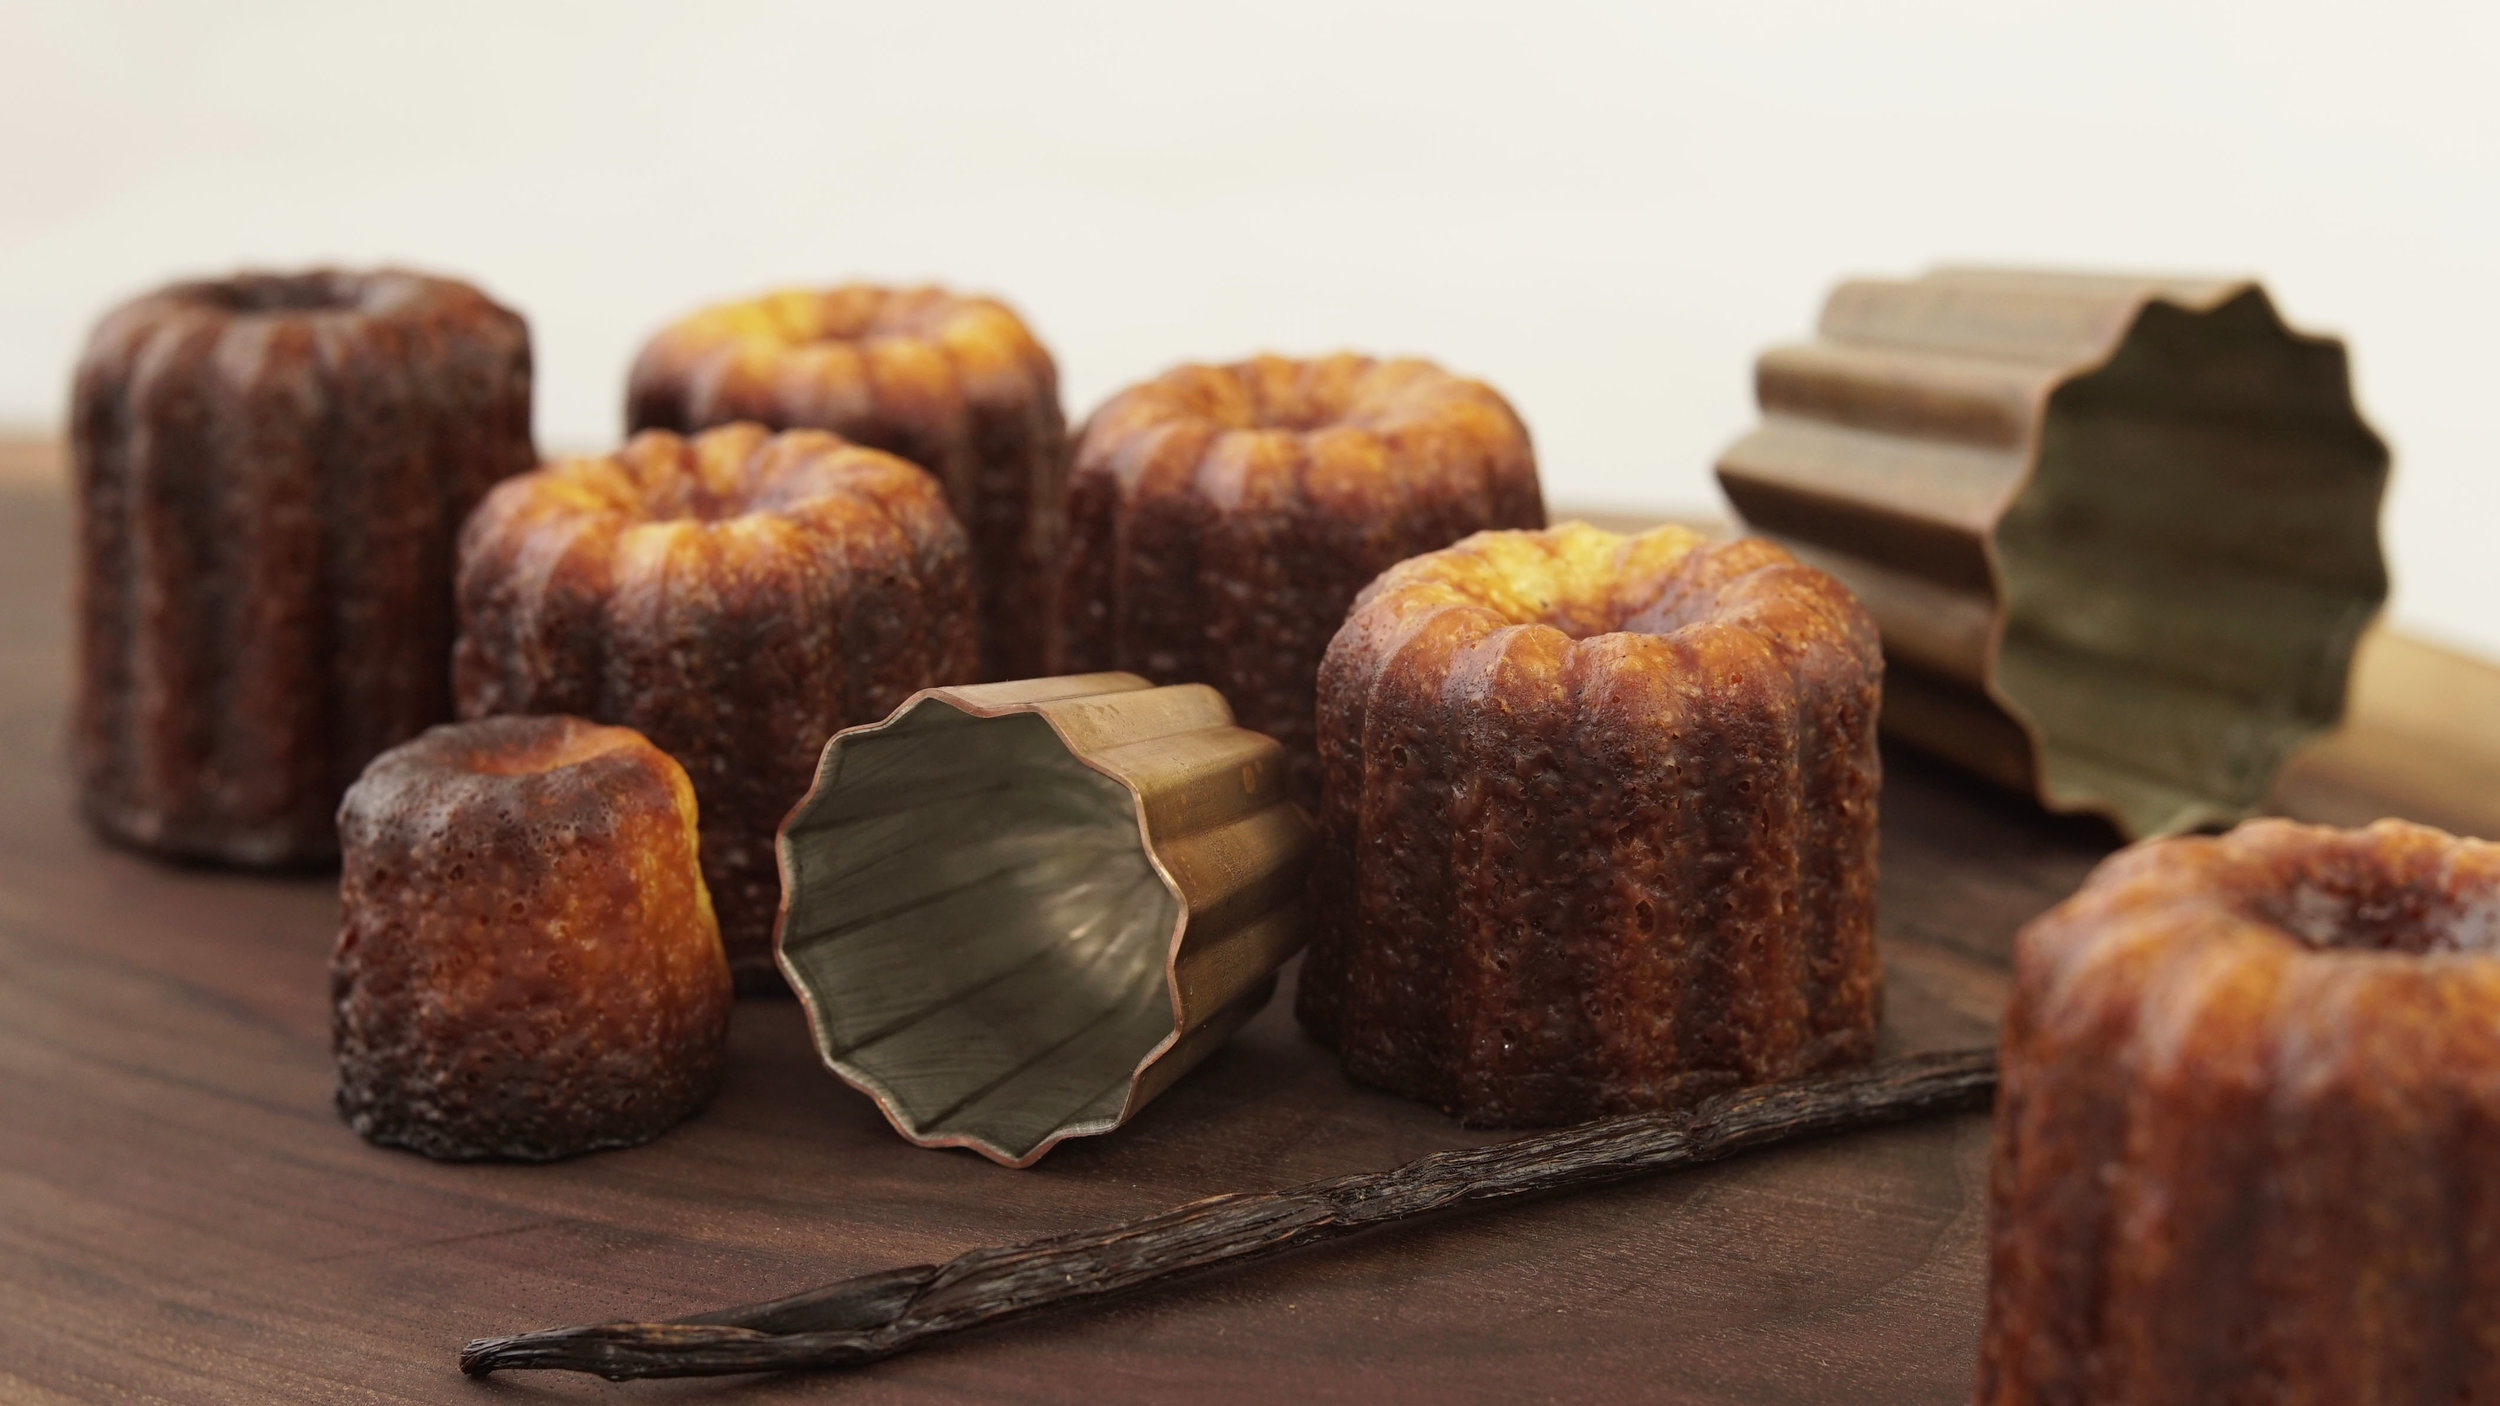 A picture of the Canele (also spelt Cannele) from Bordeaux, made by Saveur Sucrée bakery in Toronto